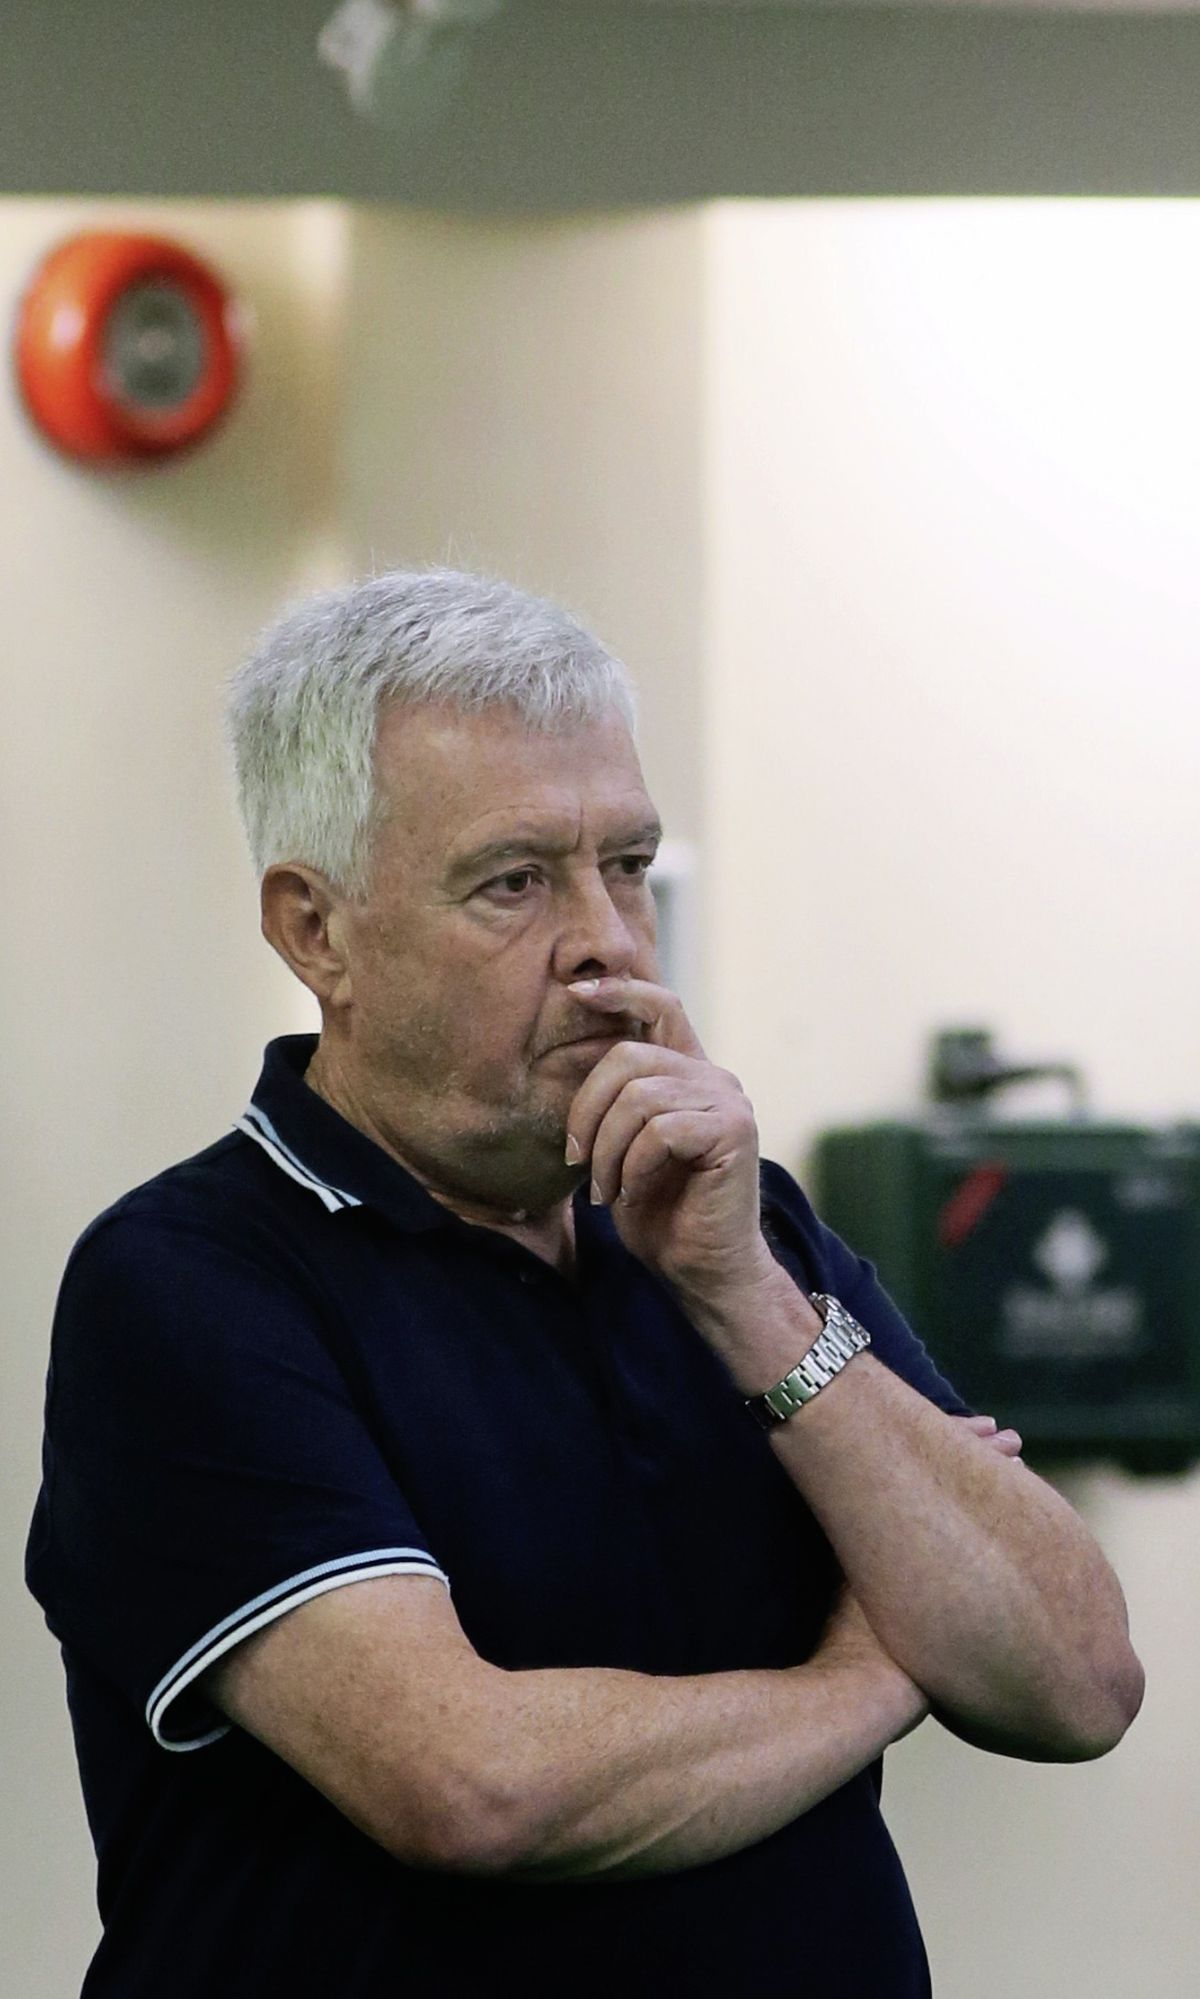 Always thinking ahead: The sport of bowls will miss Joe Thompson's wise council and drive.